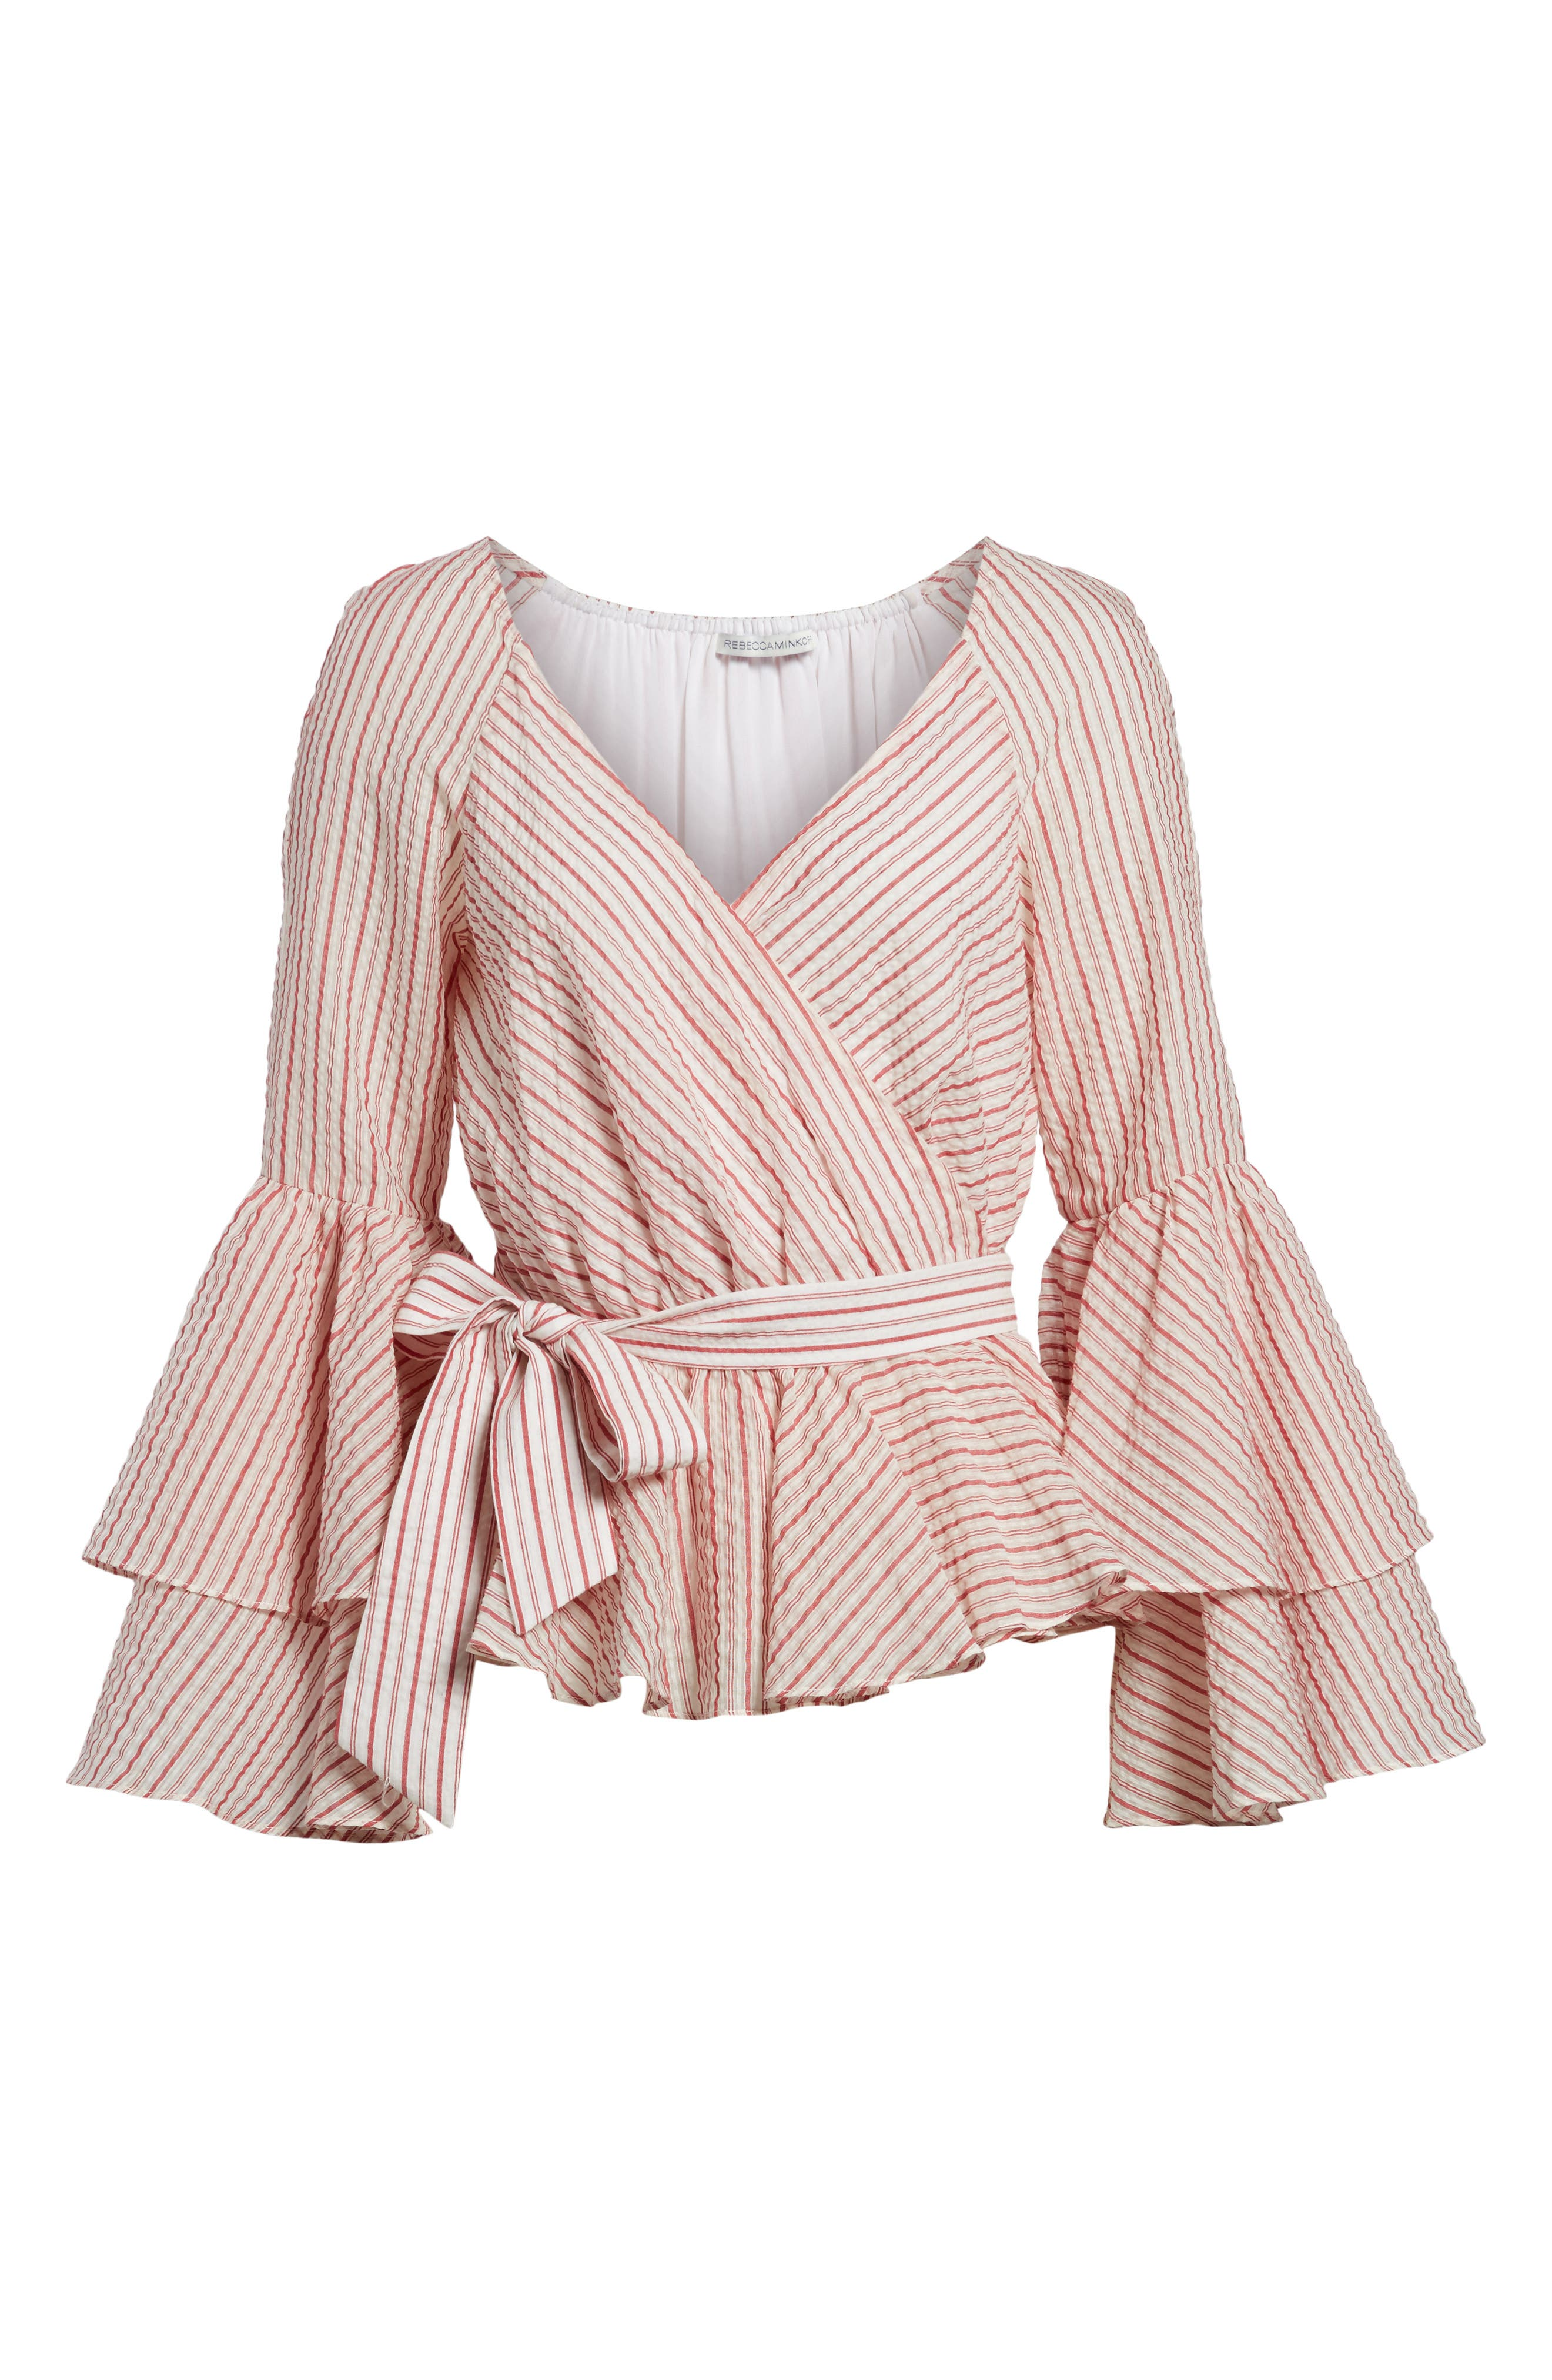 Melly Stripe Top,                             Alternate thumbnail 6, color,                             603